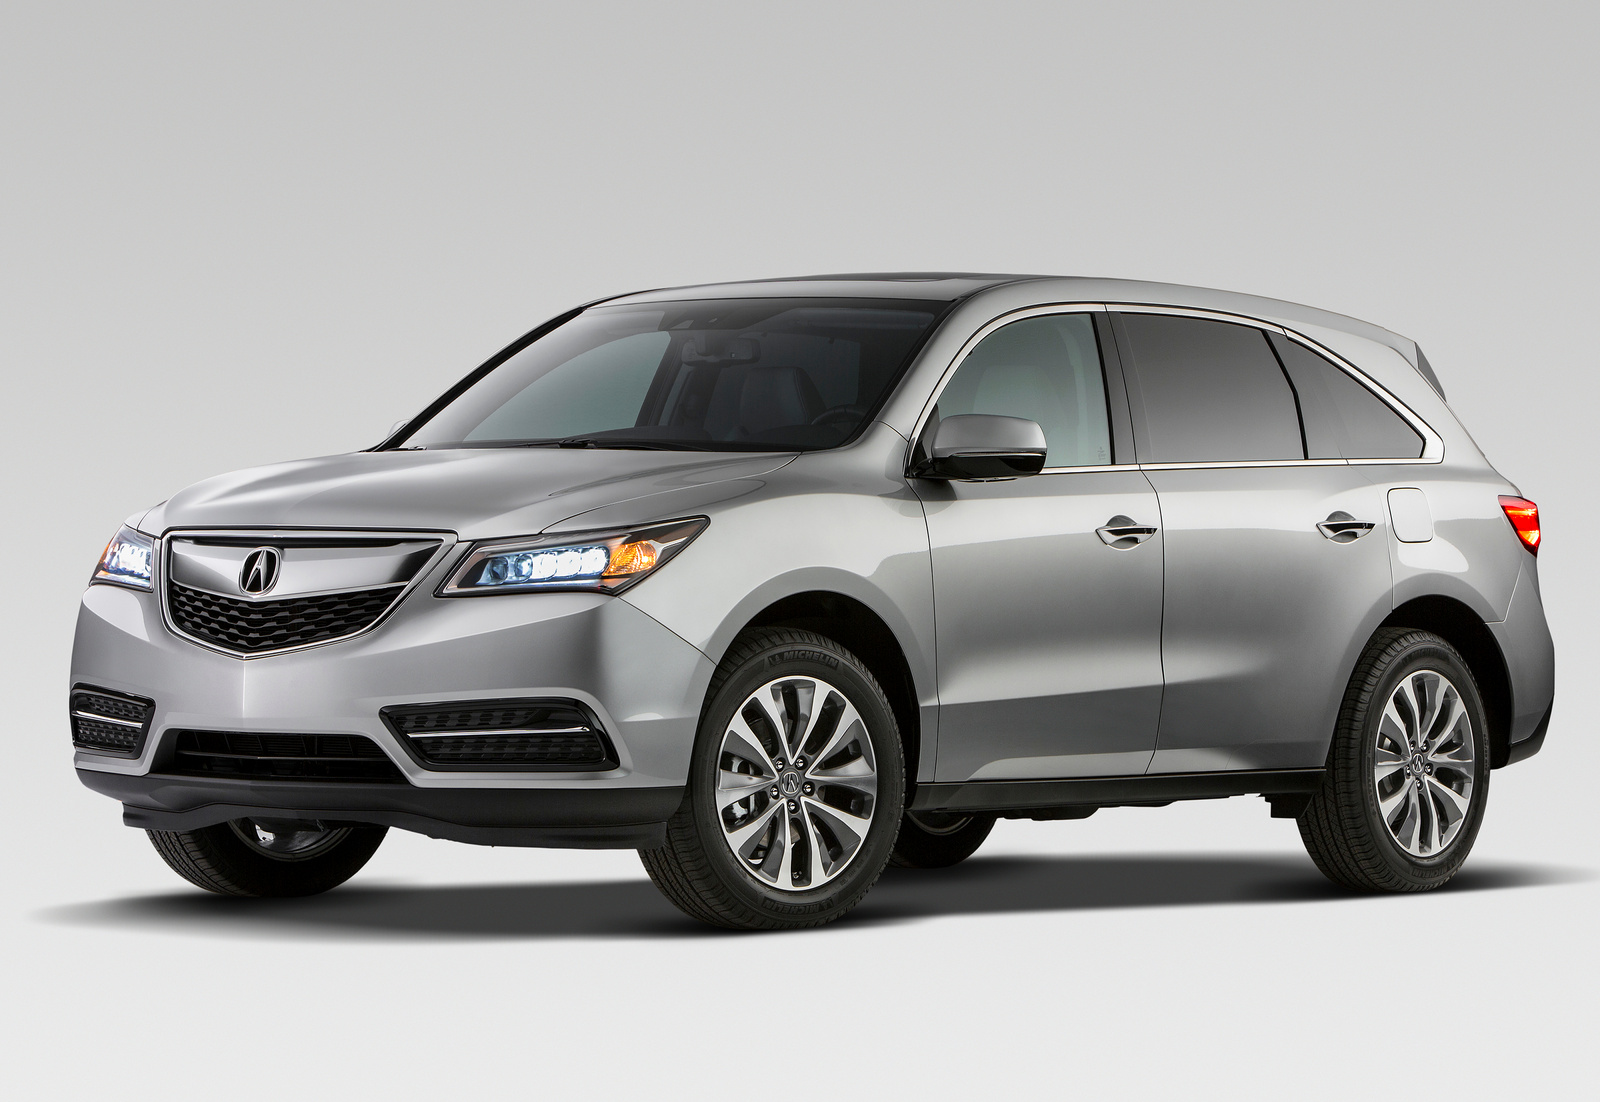 Acura Tl 2016 Price >> 2014 Acura MDX - Test Drive Review - CarGurus